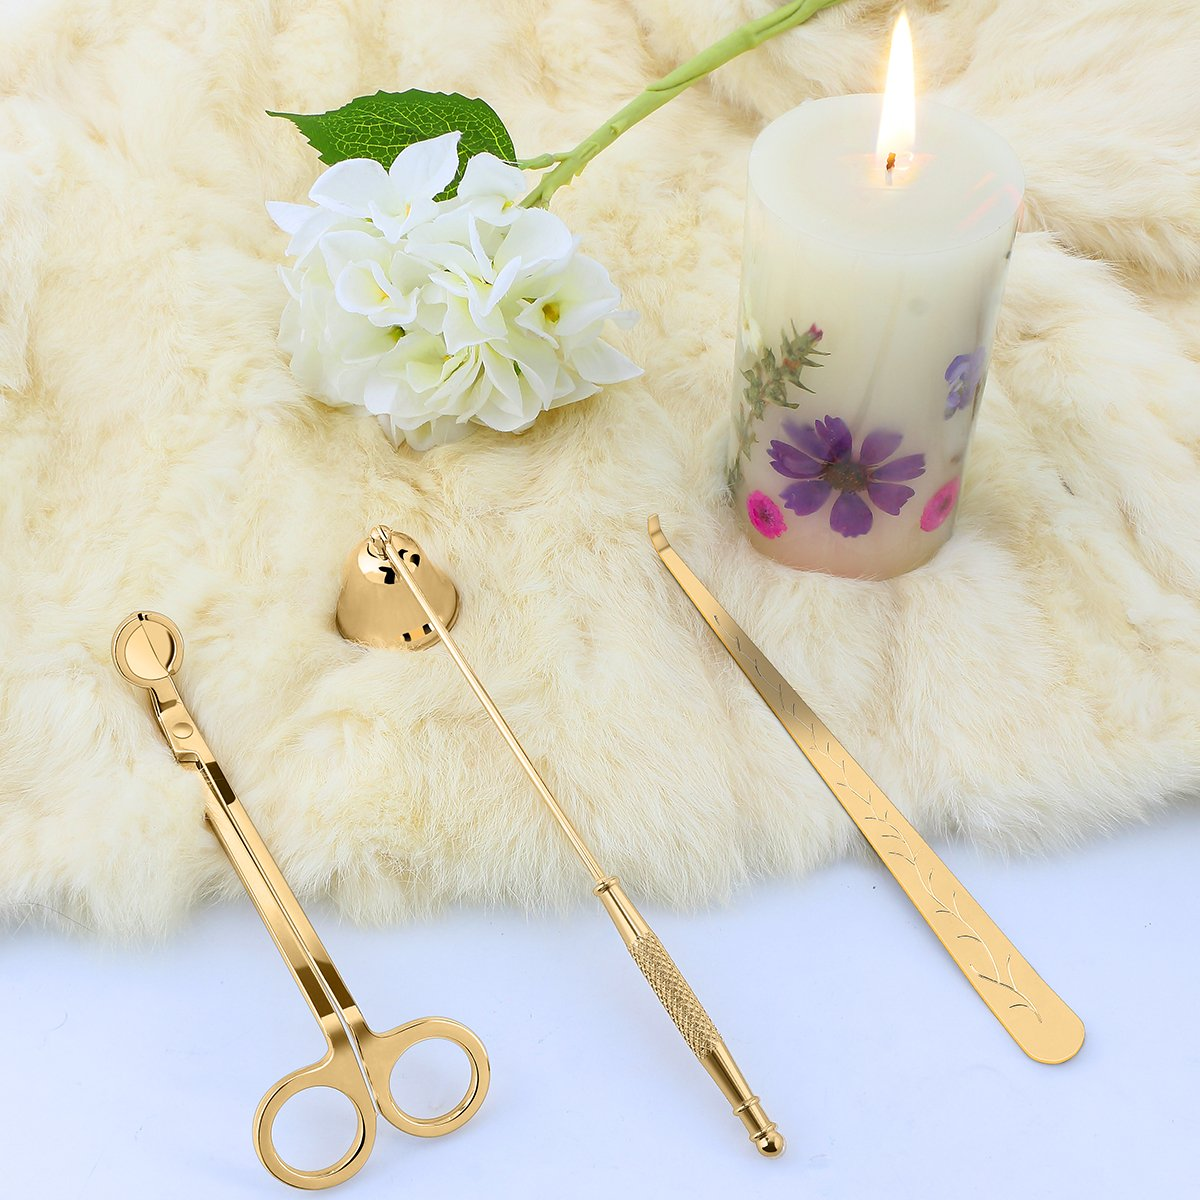 LOHOTEK Candle Snuffer, Candle Wick Trimmer & Wick Dipper Candle Accessories (Champange Gold) by LOHOTEK